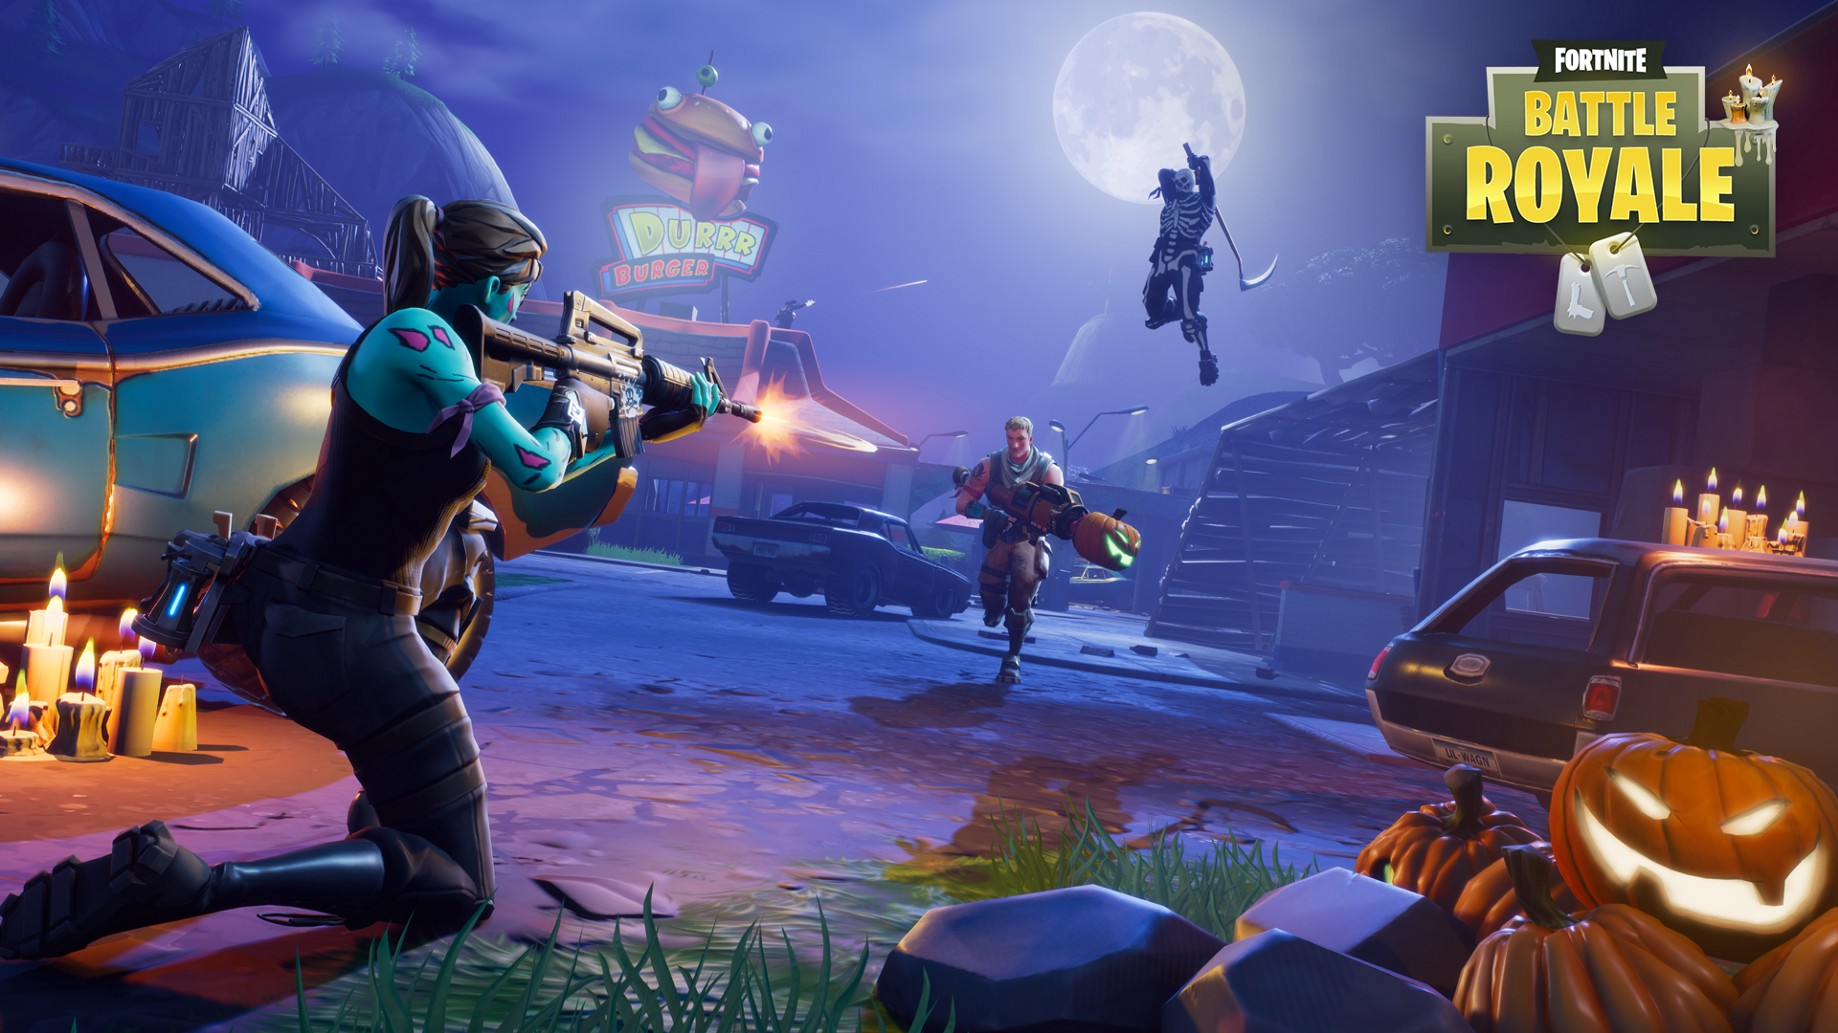 Week 9: Fortnite Friday Team Power Rankings and Storylines